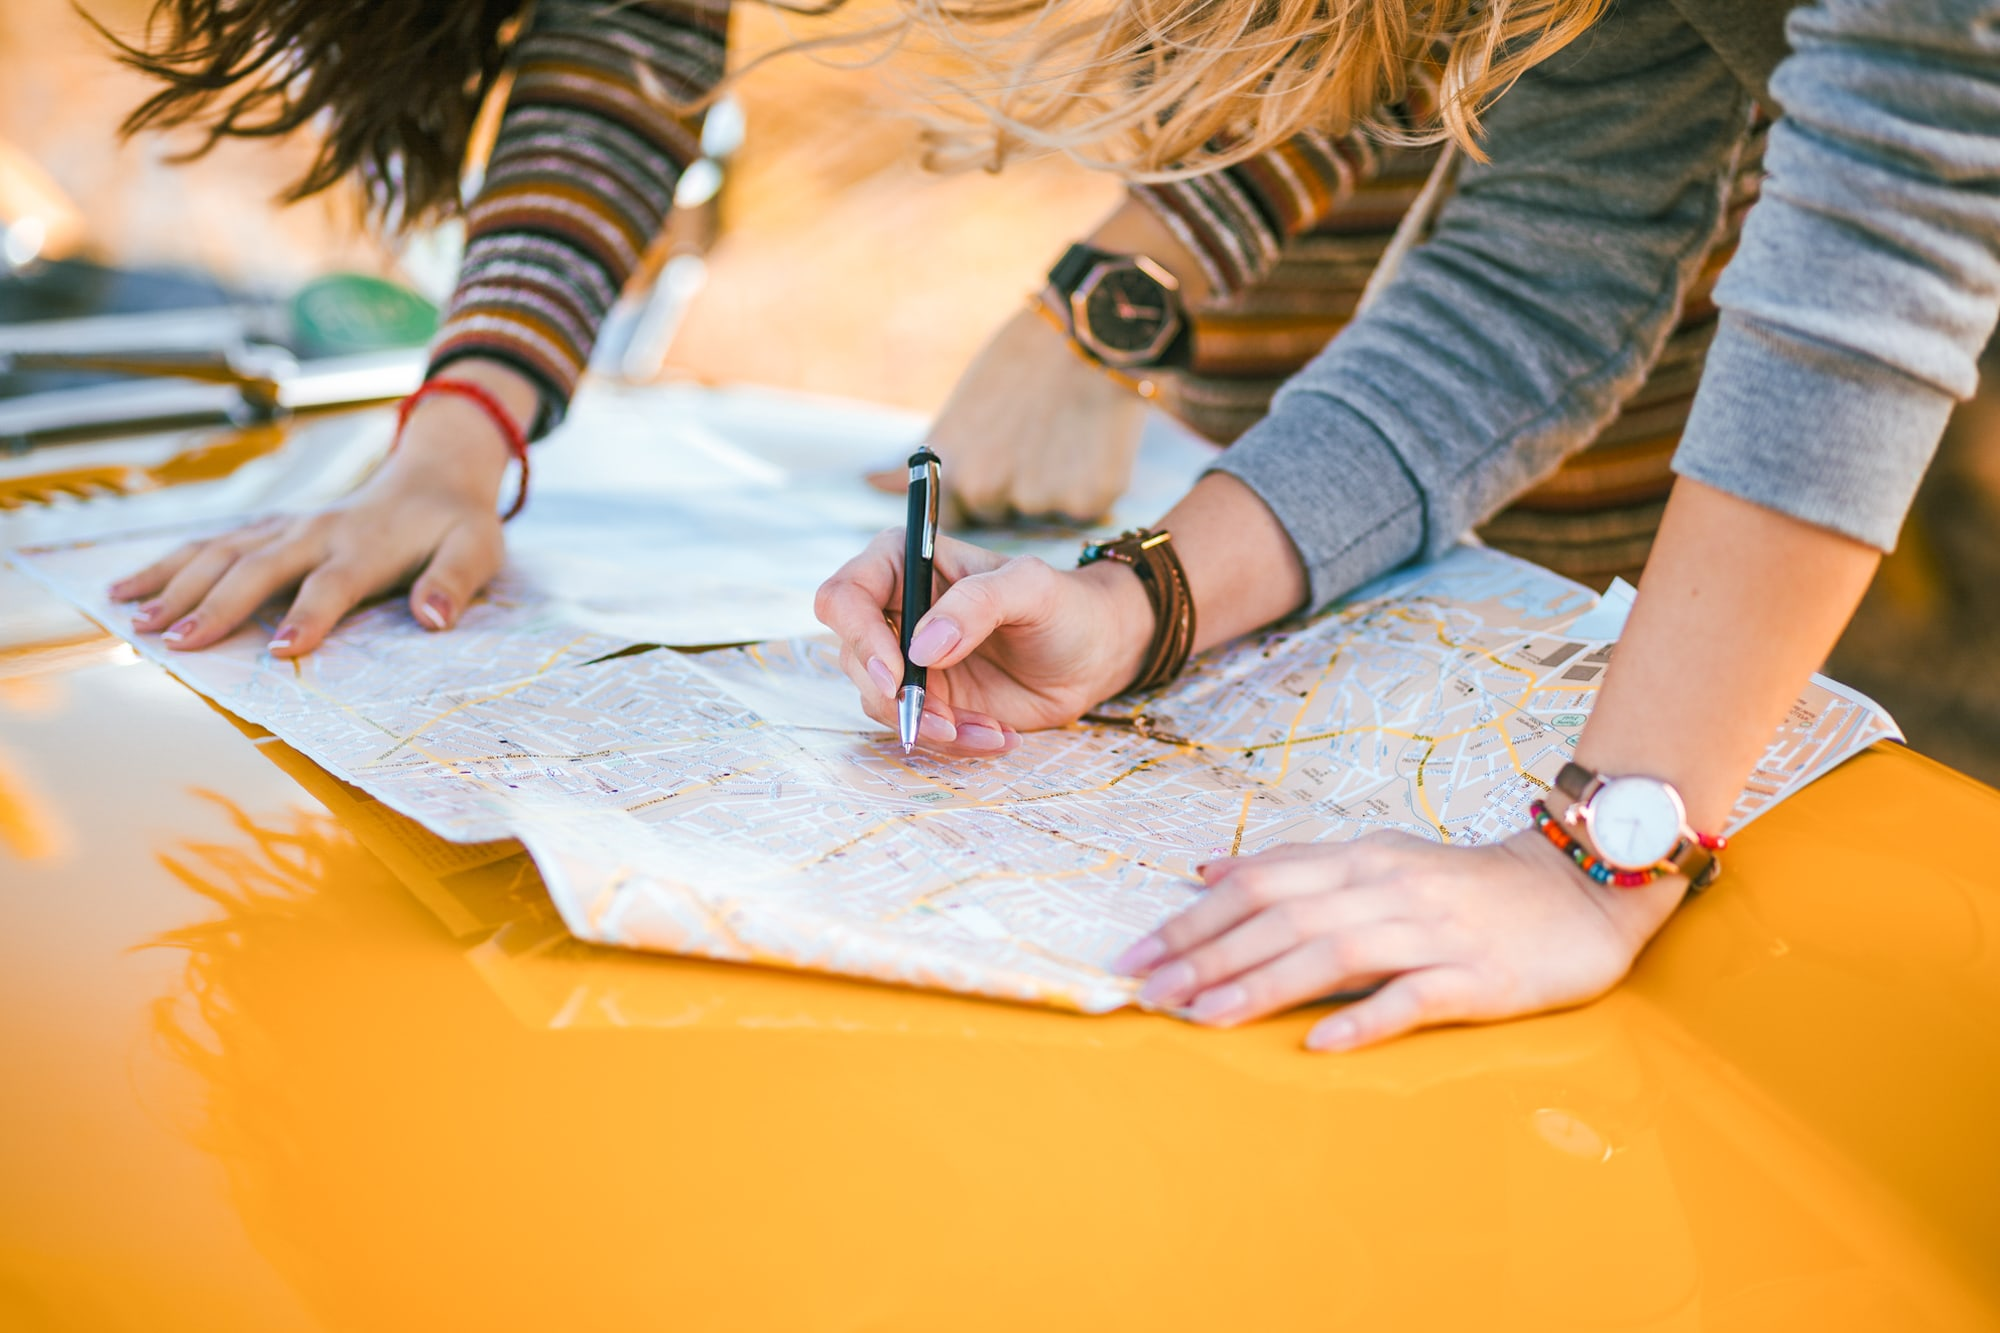 Two women use a map to plan their roadtrip